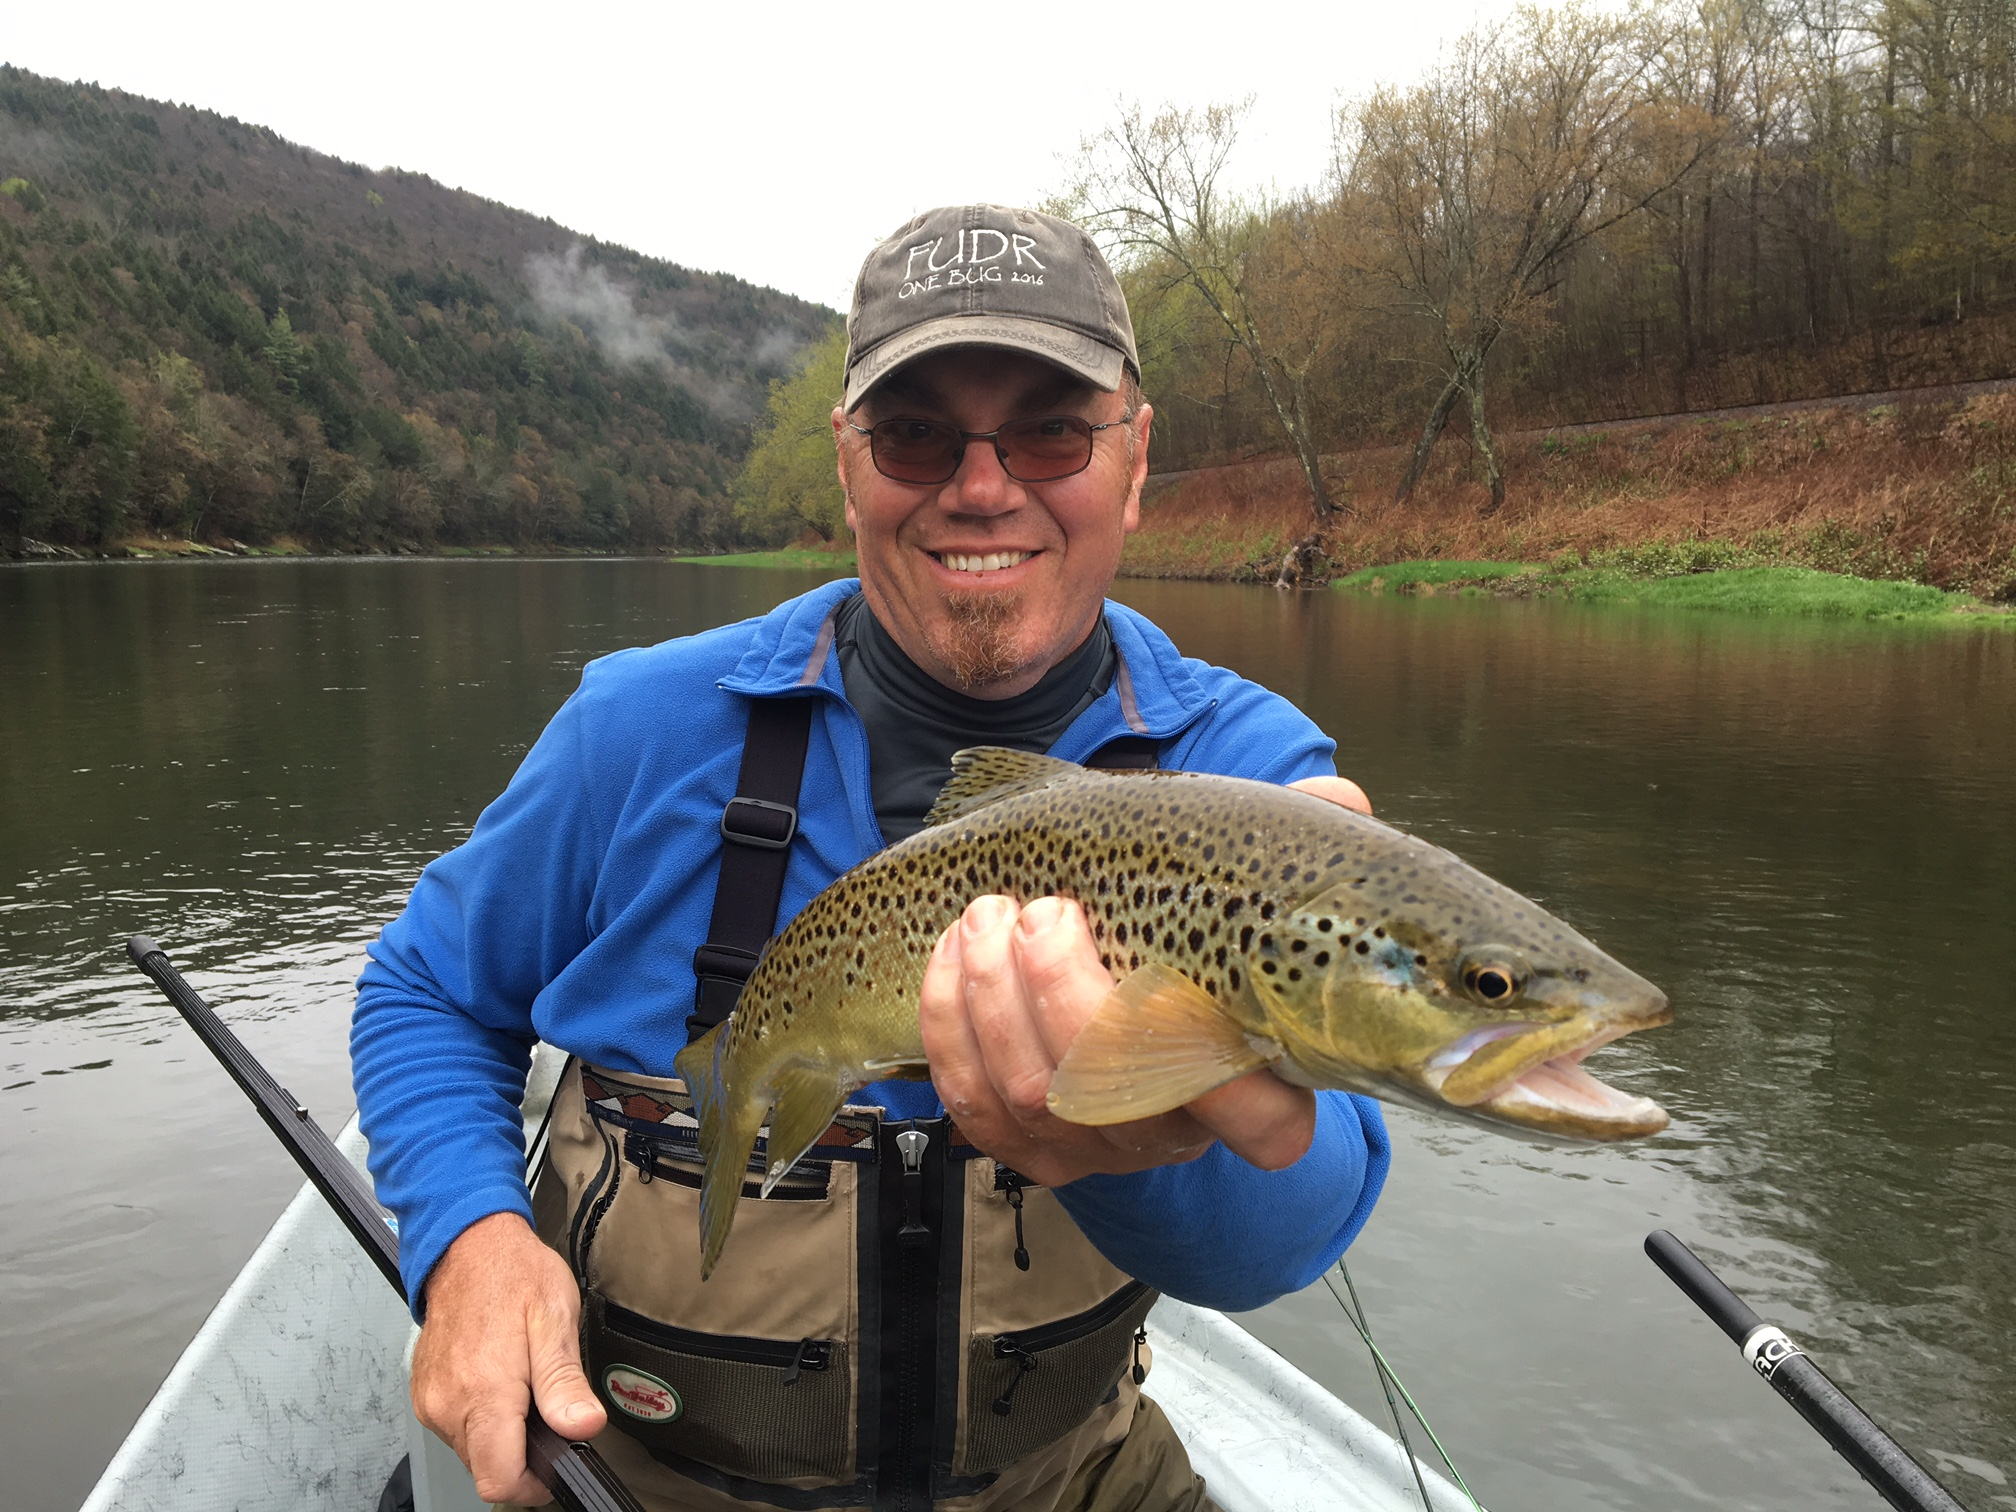 5/6/15 Guide Stefan S. boats a nice Brownie. Dry fly fishing has been good.